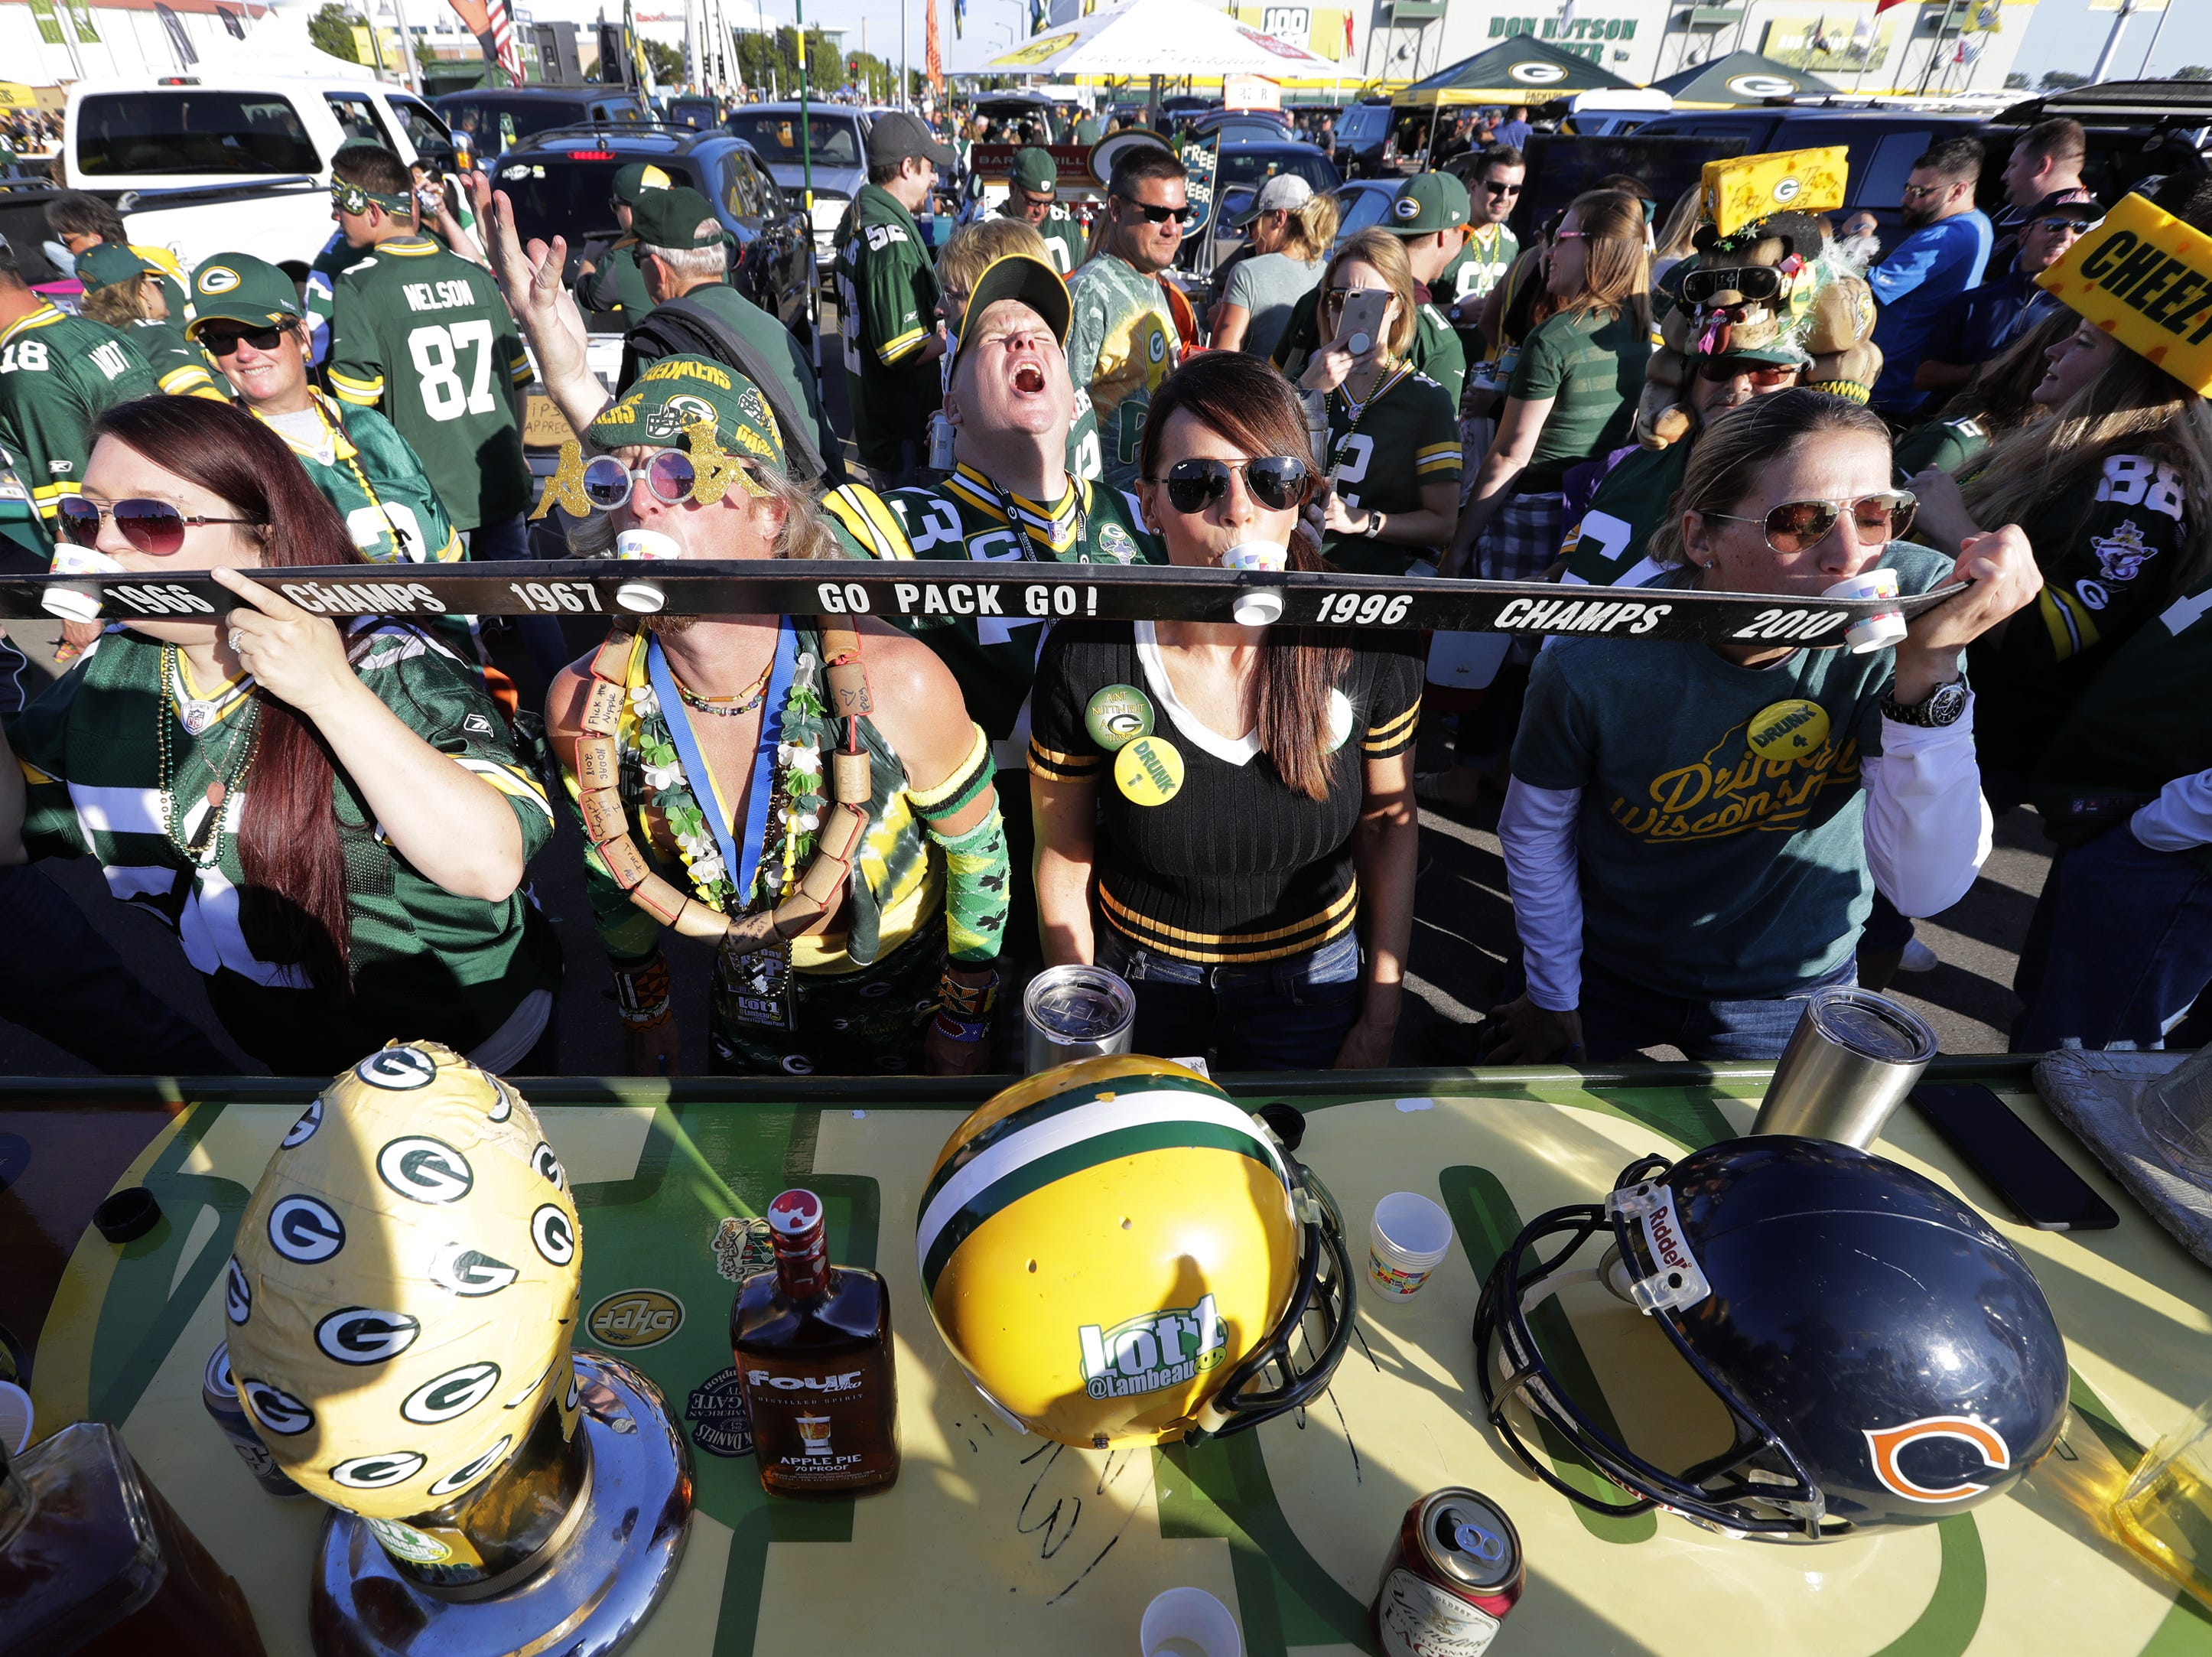 Football fans down shots while tailgating prior to the Green Bay Packers playing the Chicago Bears Sunday, Sept. 9, 2018, at Lambeau Field in Green Bay, Wis.